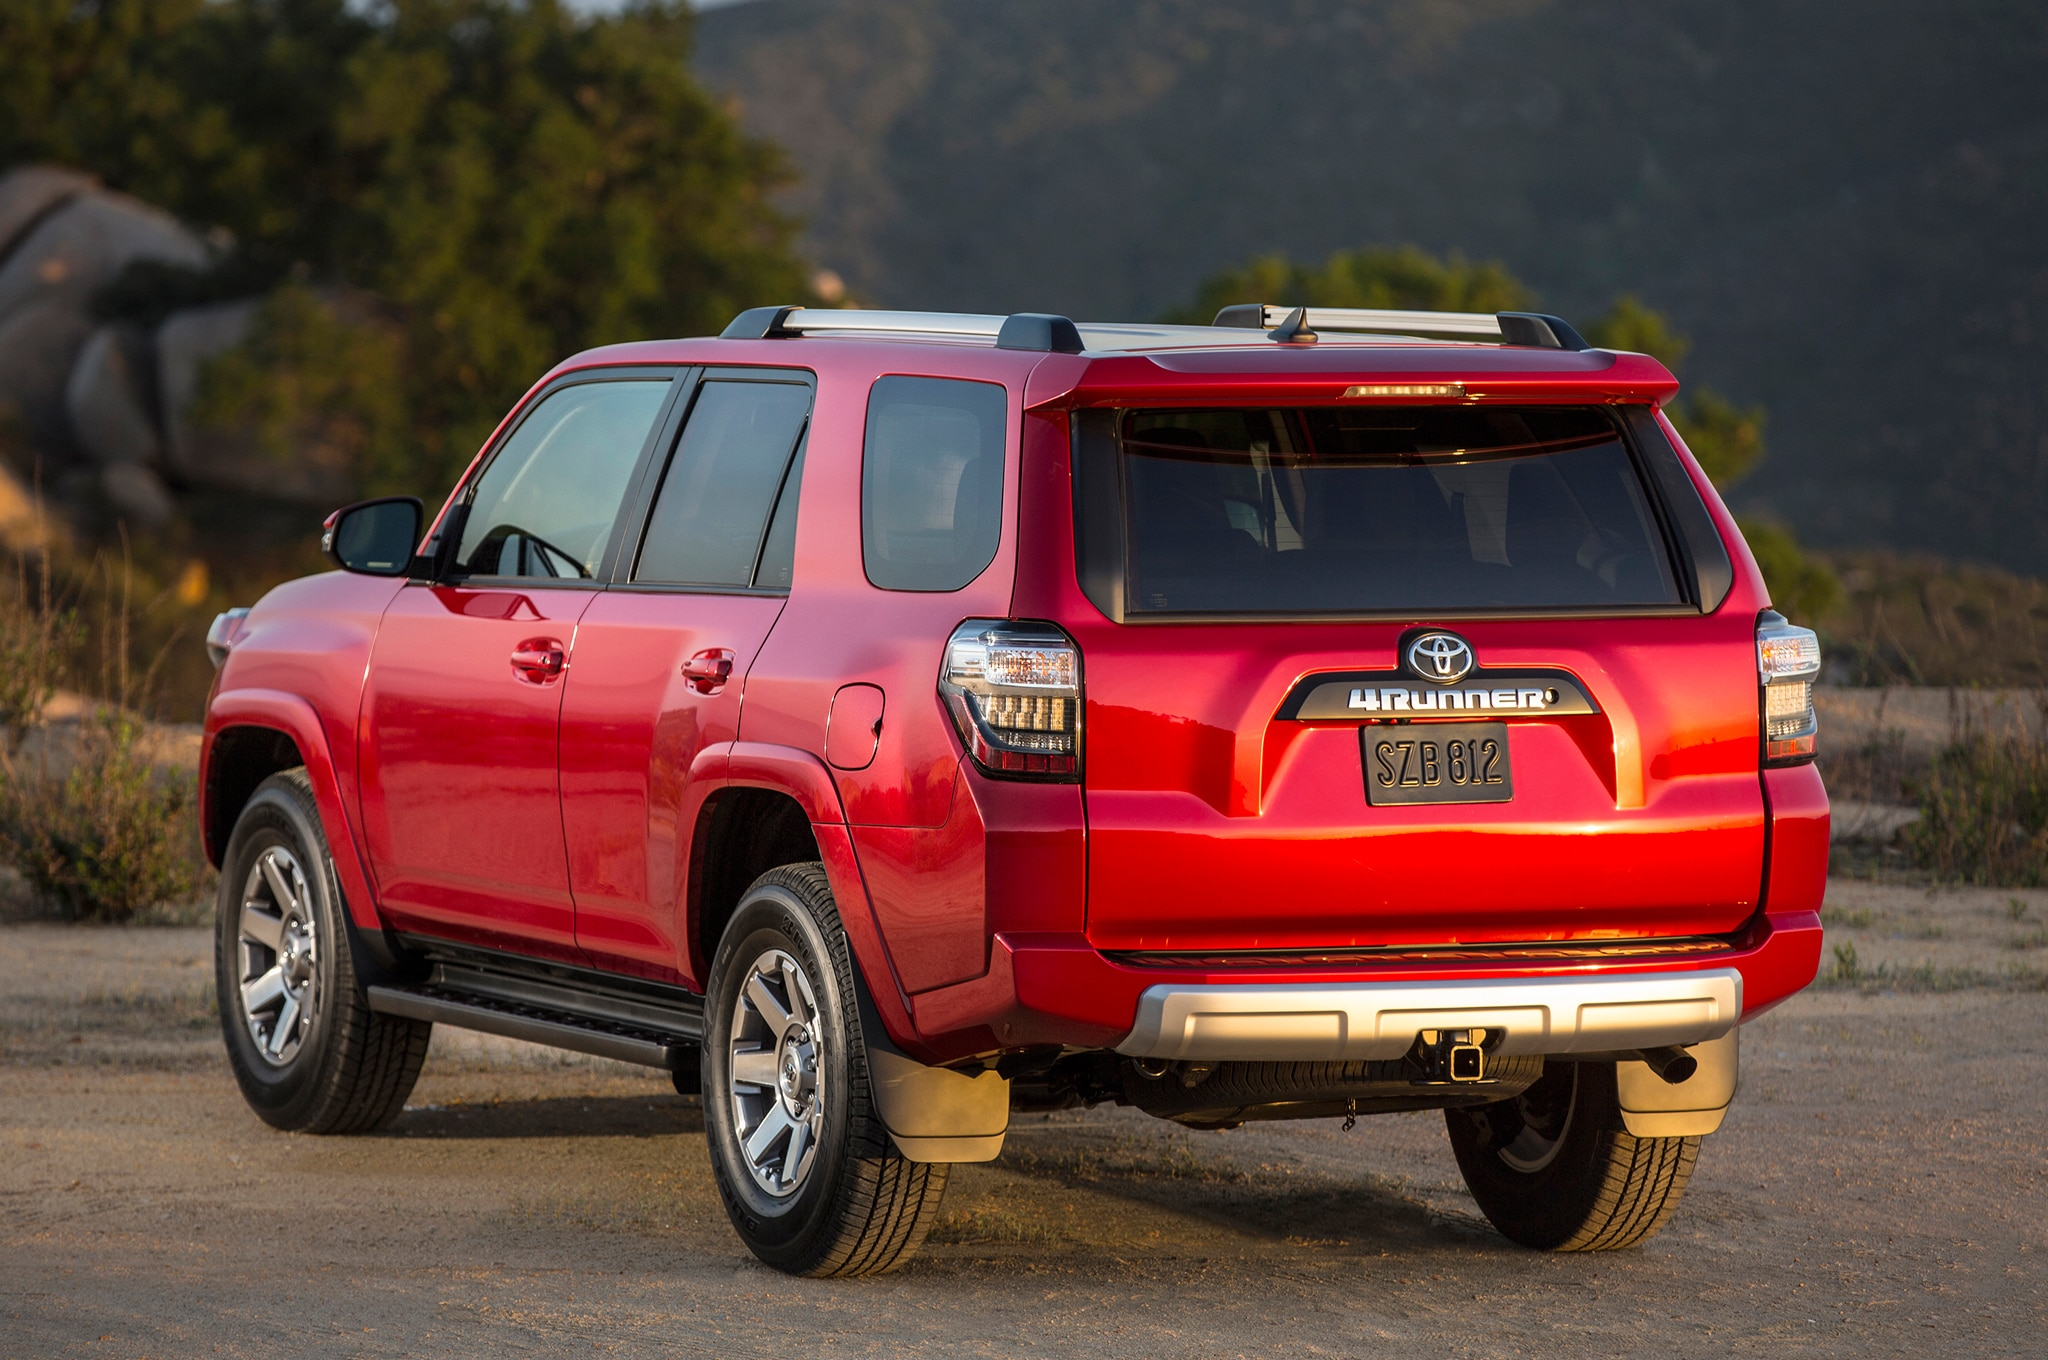 2014 Toyota 4runner Trail rear view 04